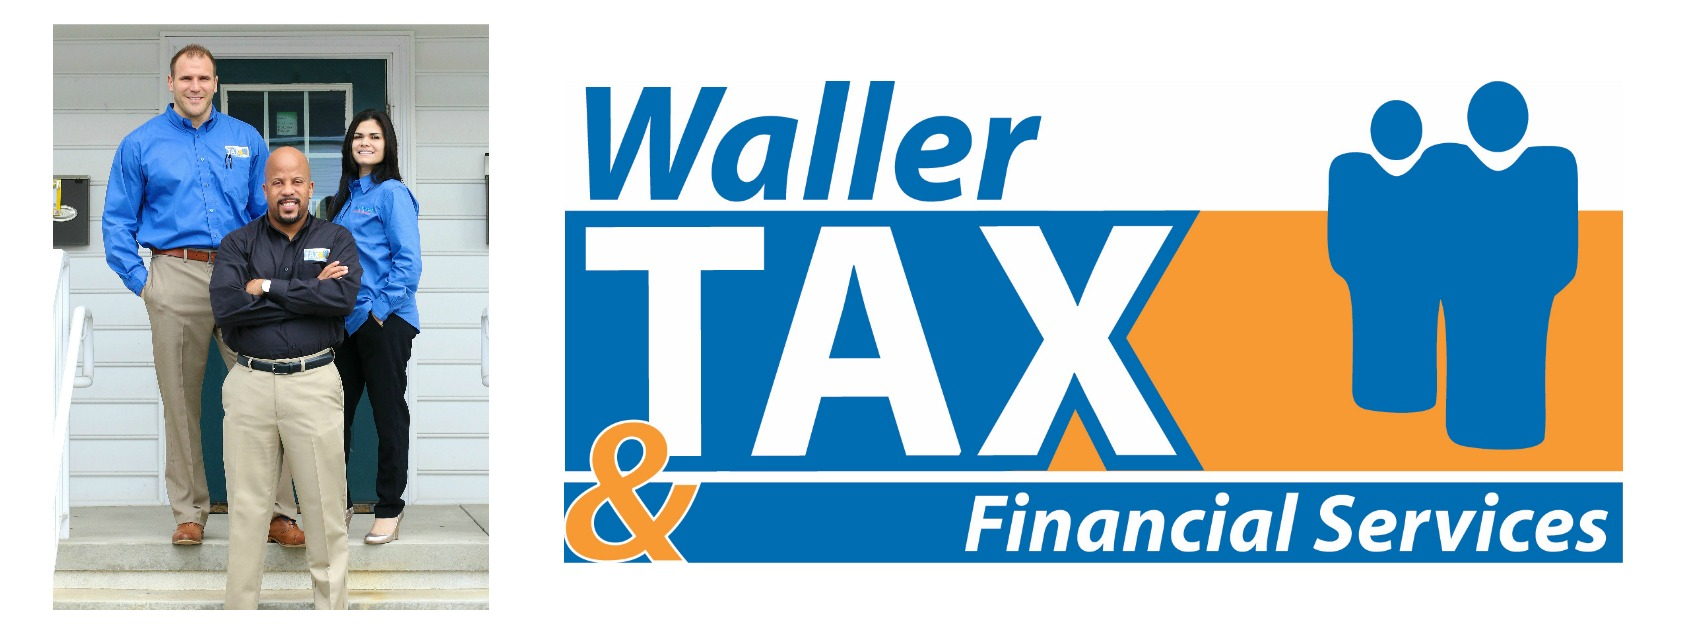 Pennsylvania's Top Rated Local® Accounting Firms and CPA Award Winner: Waller Tax & Financial Services